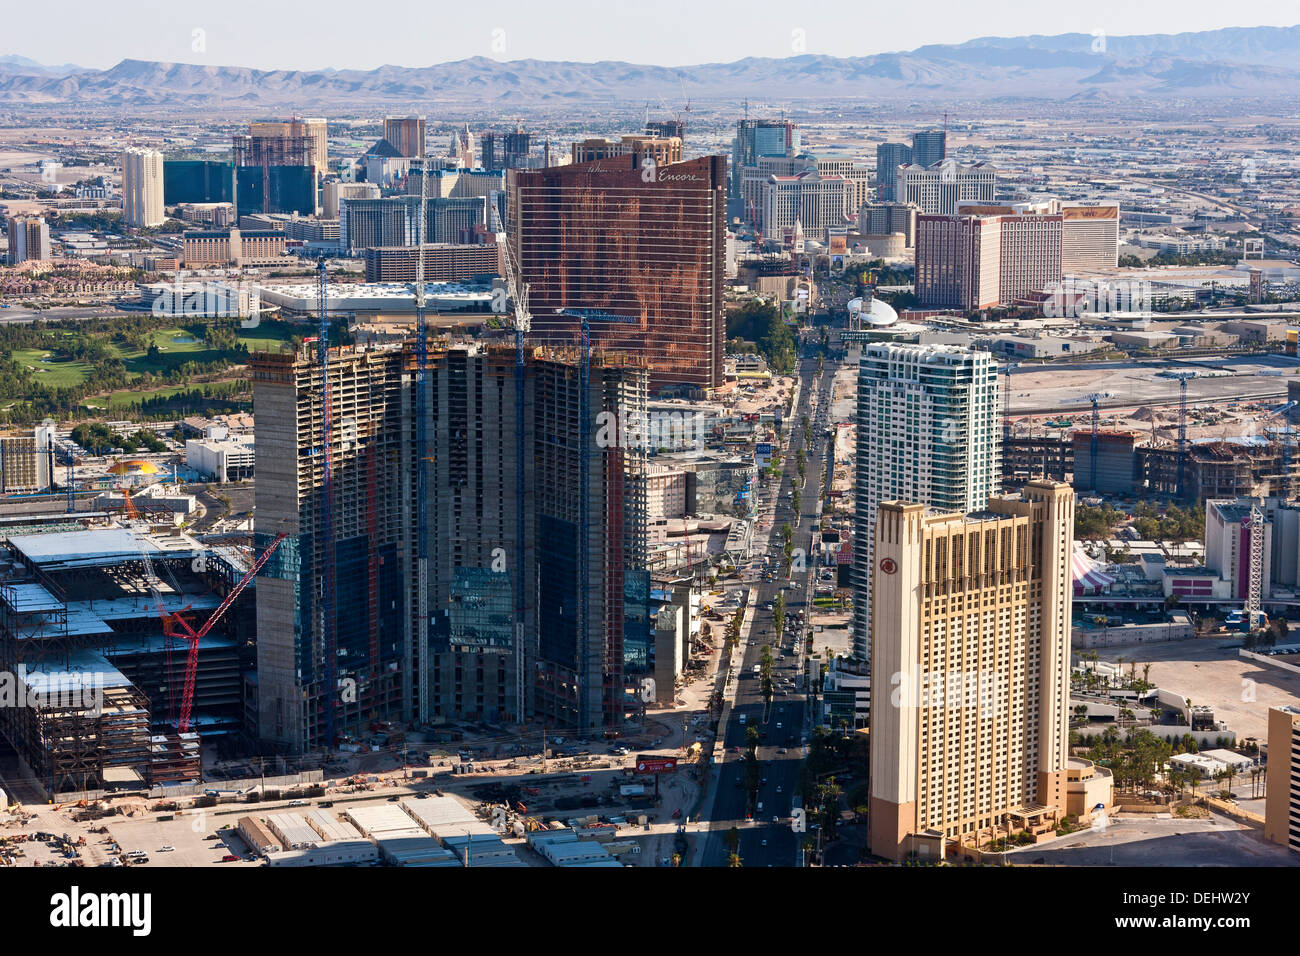 Las Vegas Nevada USA viewed from the tower of the Stratosphere Casino and Hotel towards MGM Grand. JMH5459 - Stock Image